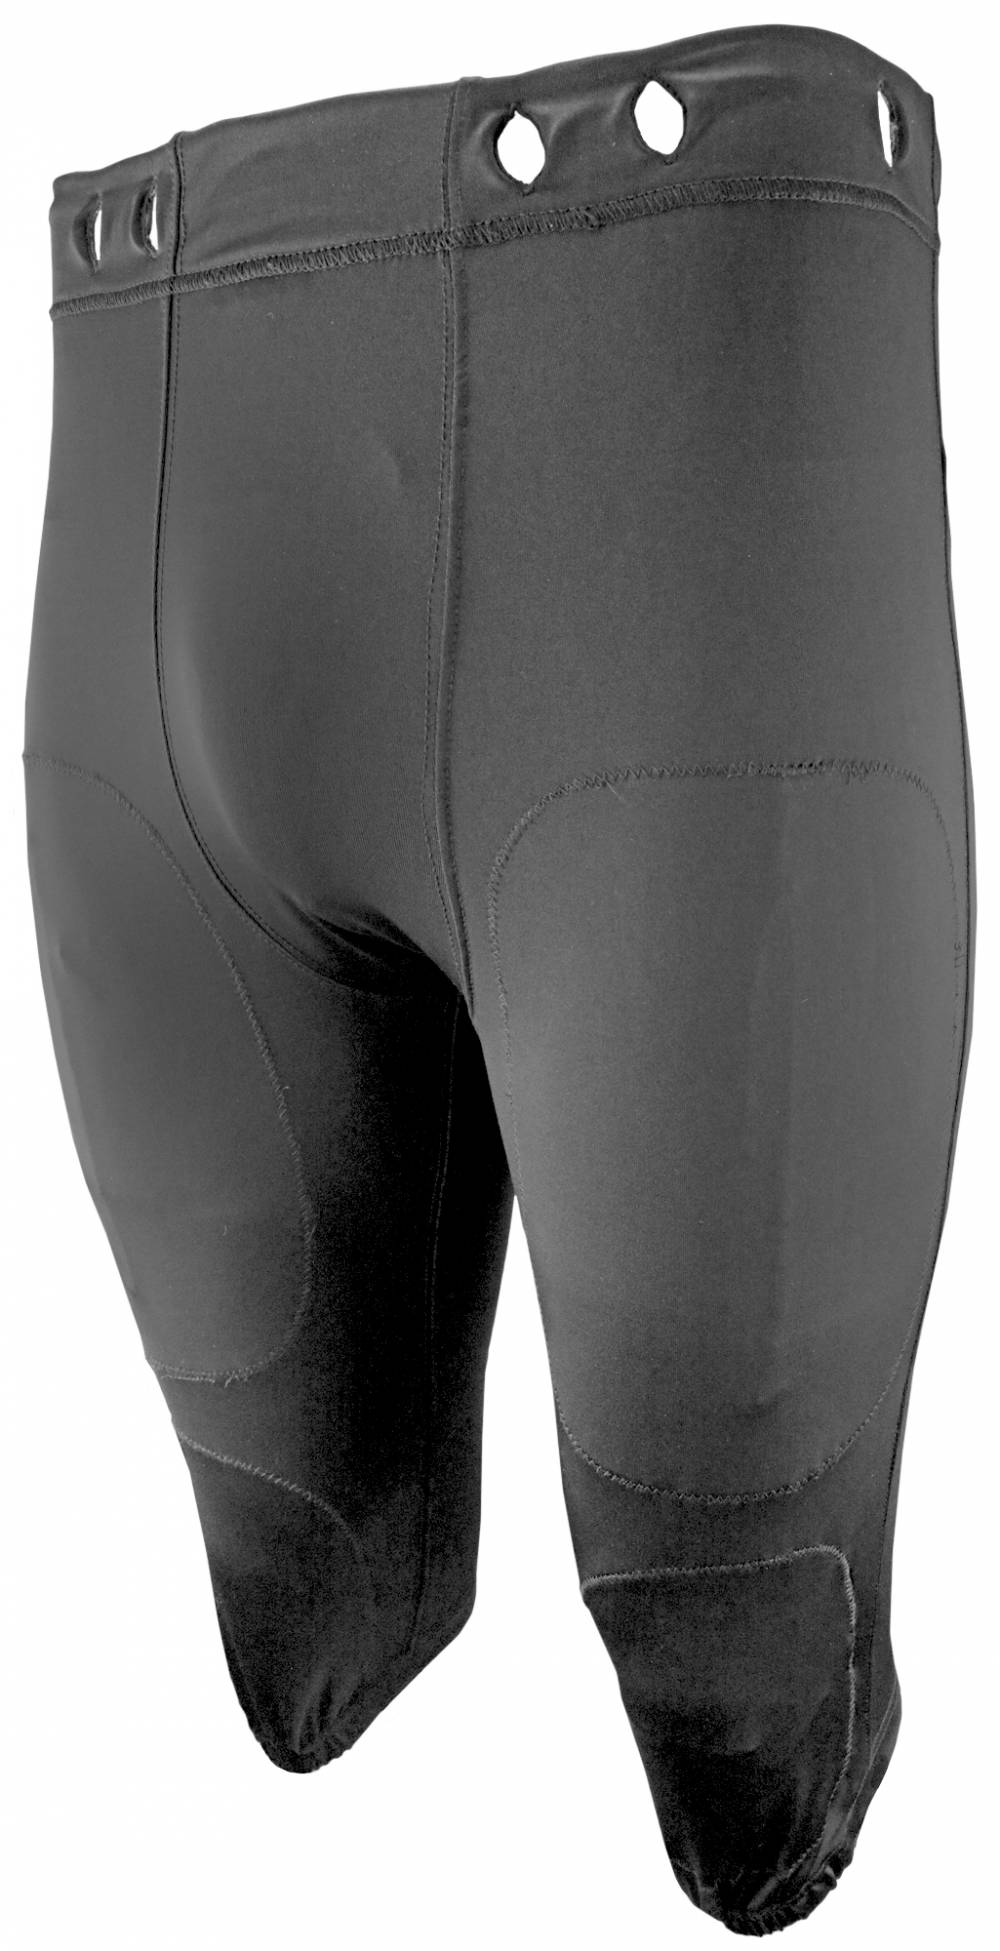 Adult Youth Touchdown Game Football Pants